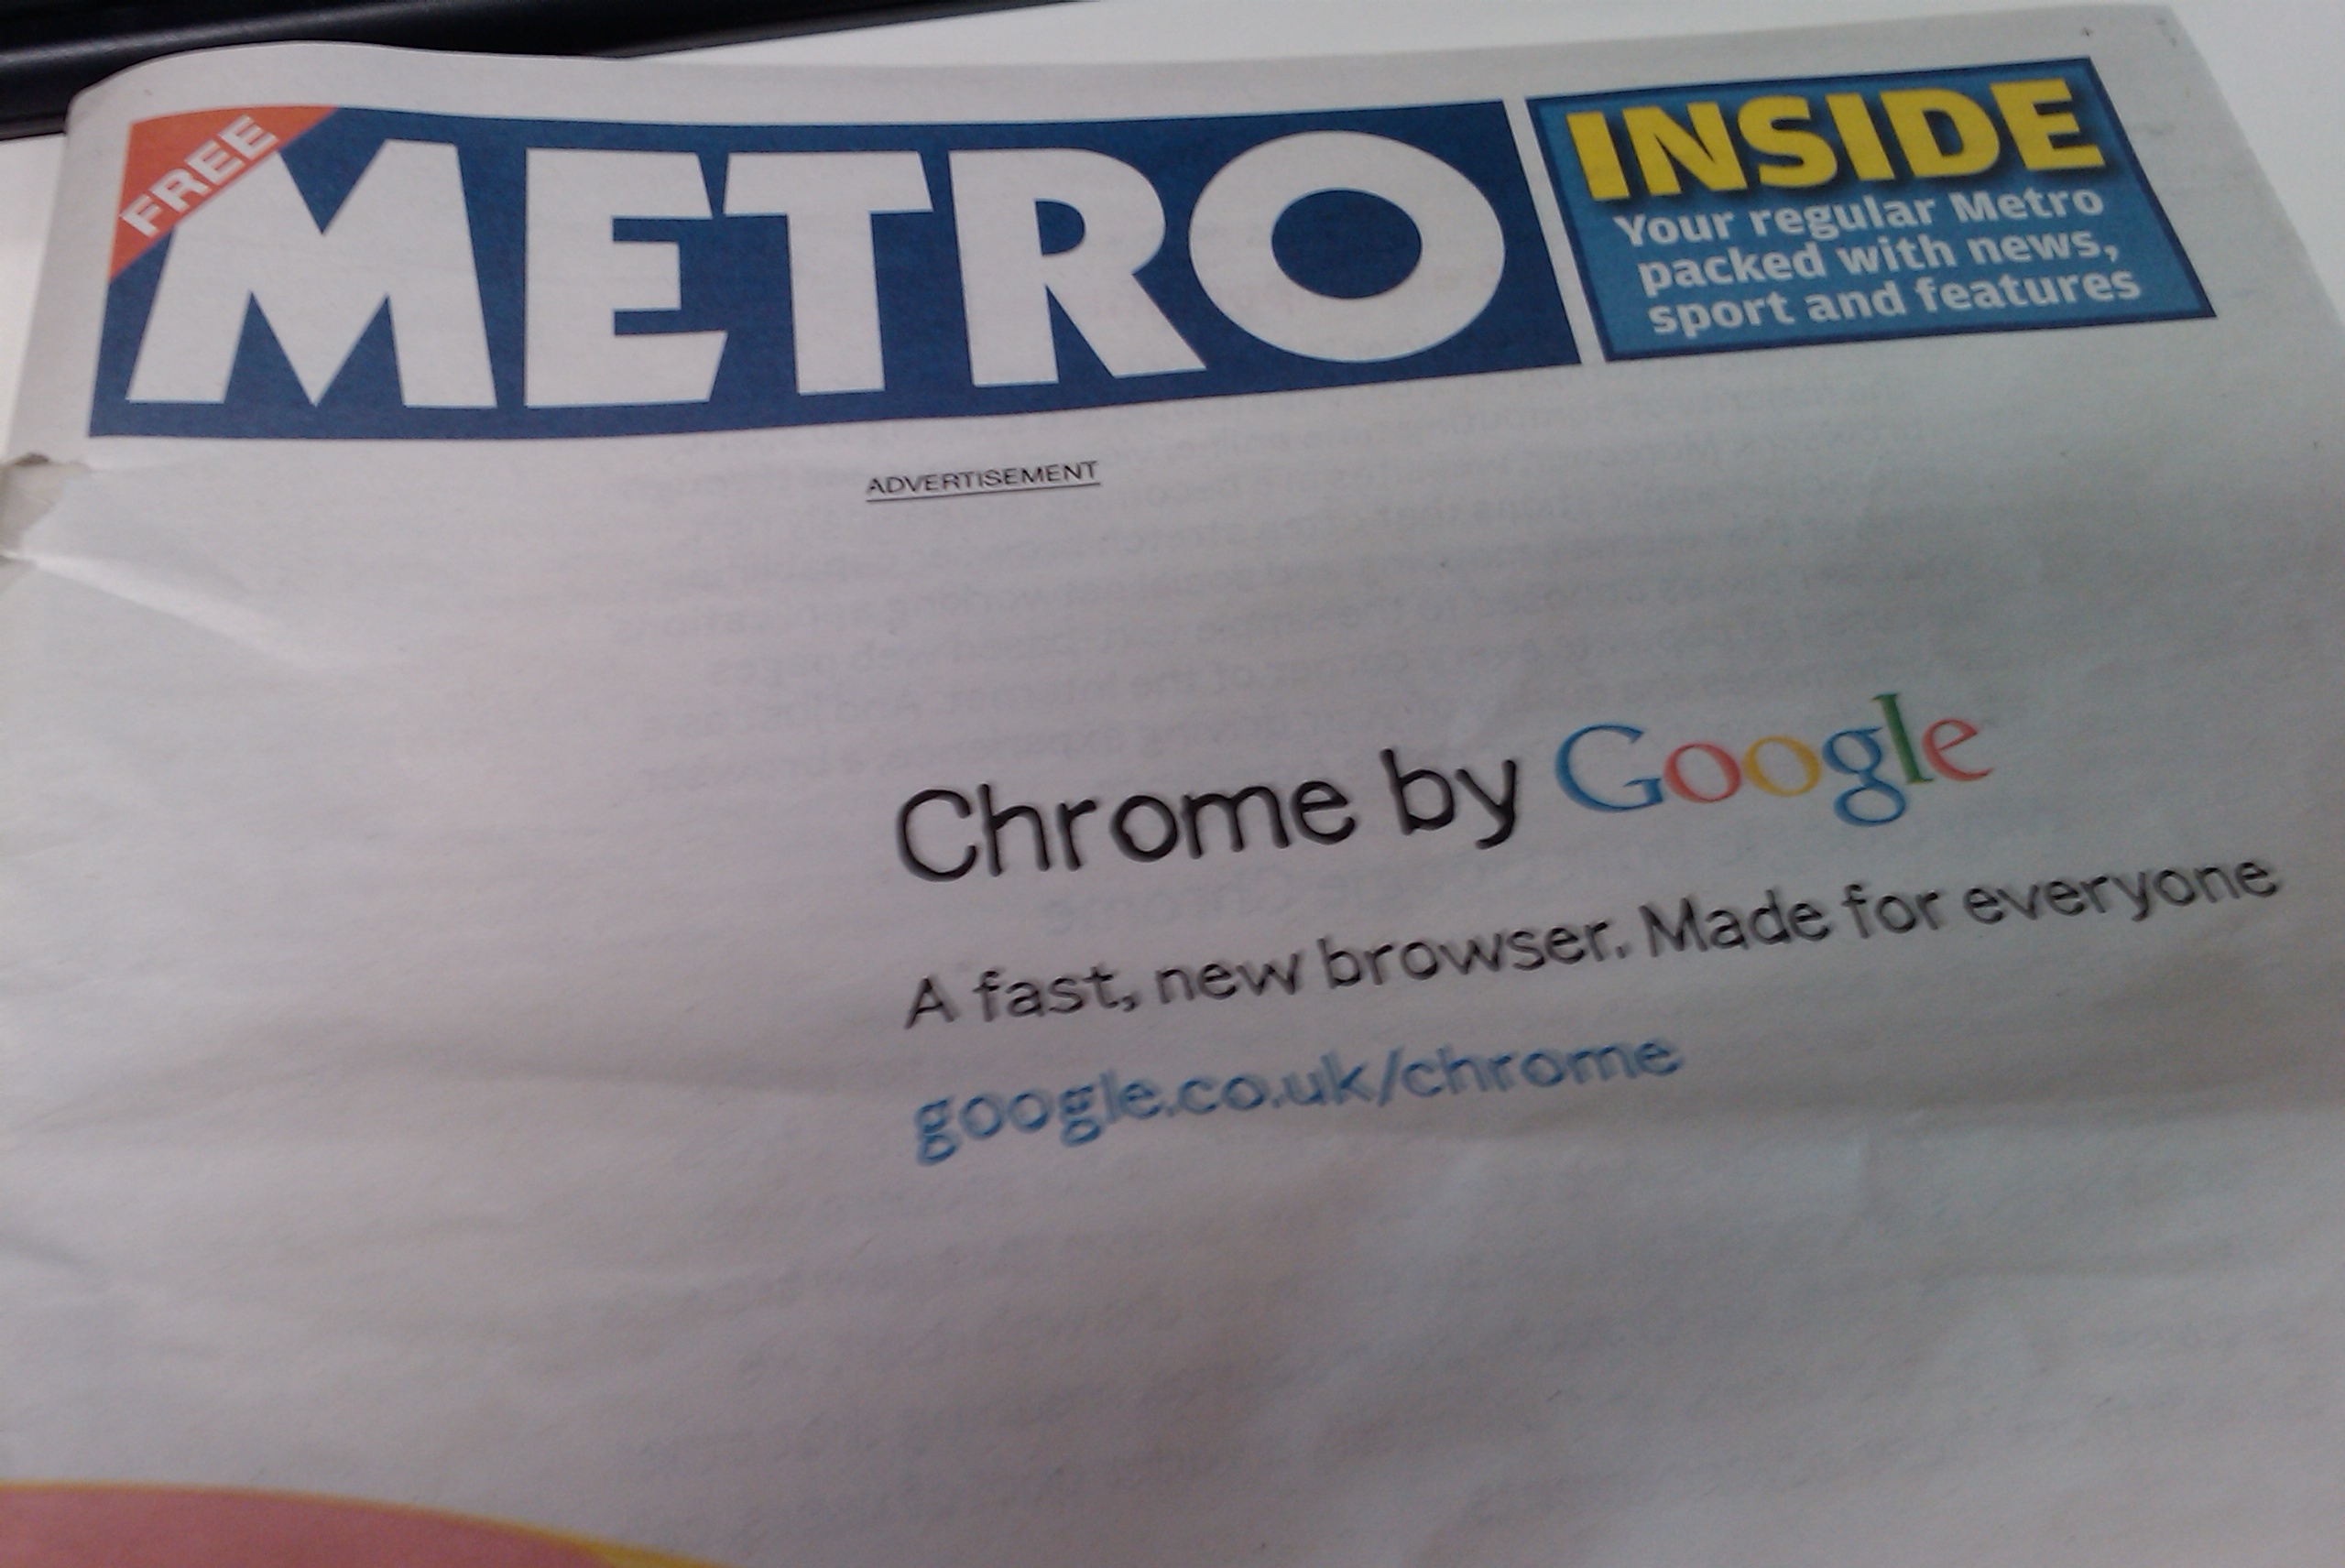 Google Chrome newspaper ad